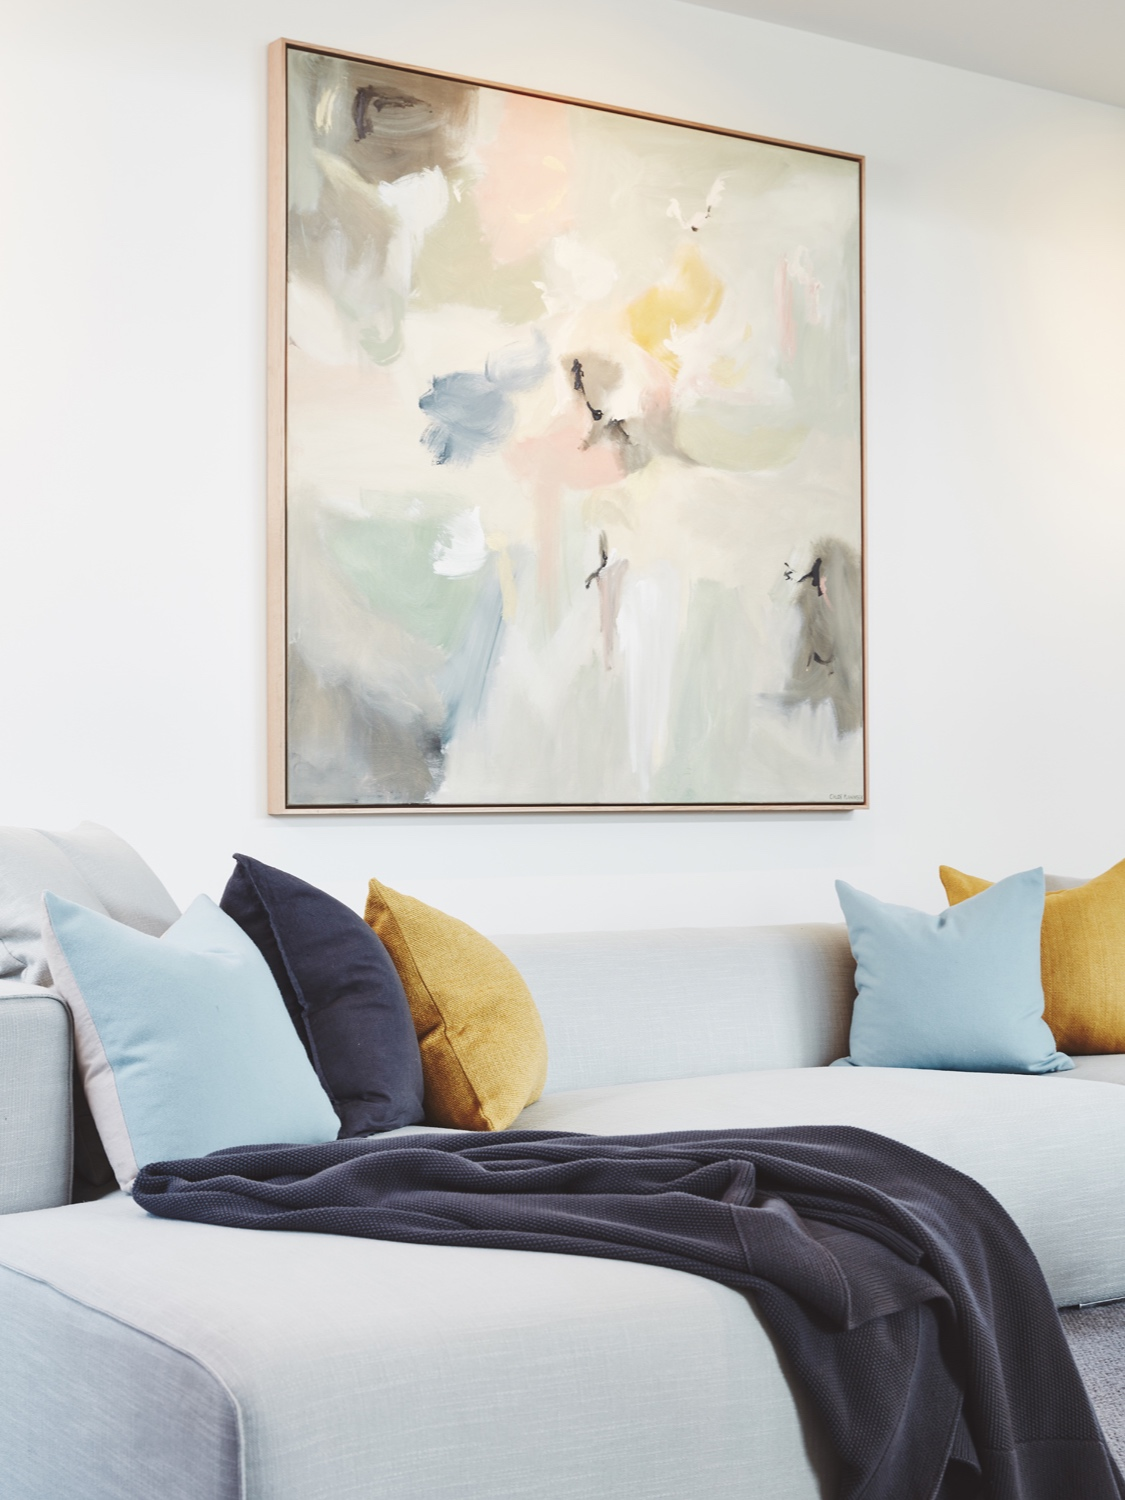 PROPERTY STYLING - Working with Melbourne's most respected real estate agents, our residential property styling services will enable buyers to realise the appeal of your property, with the aim of achieving a greater sales result at the conclusion of your real estate campaign.